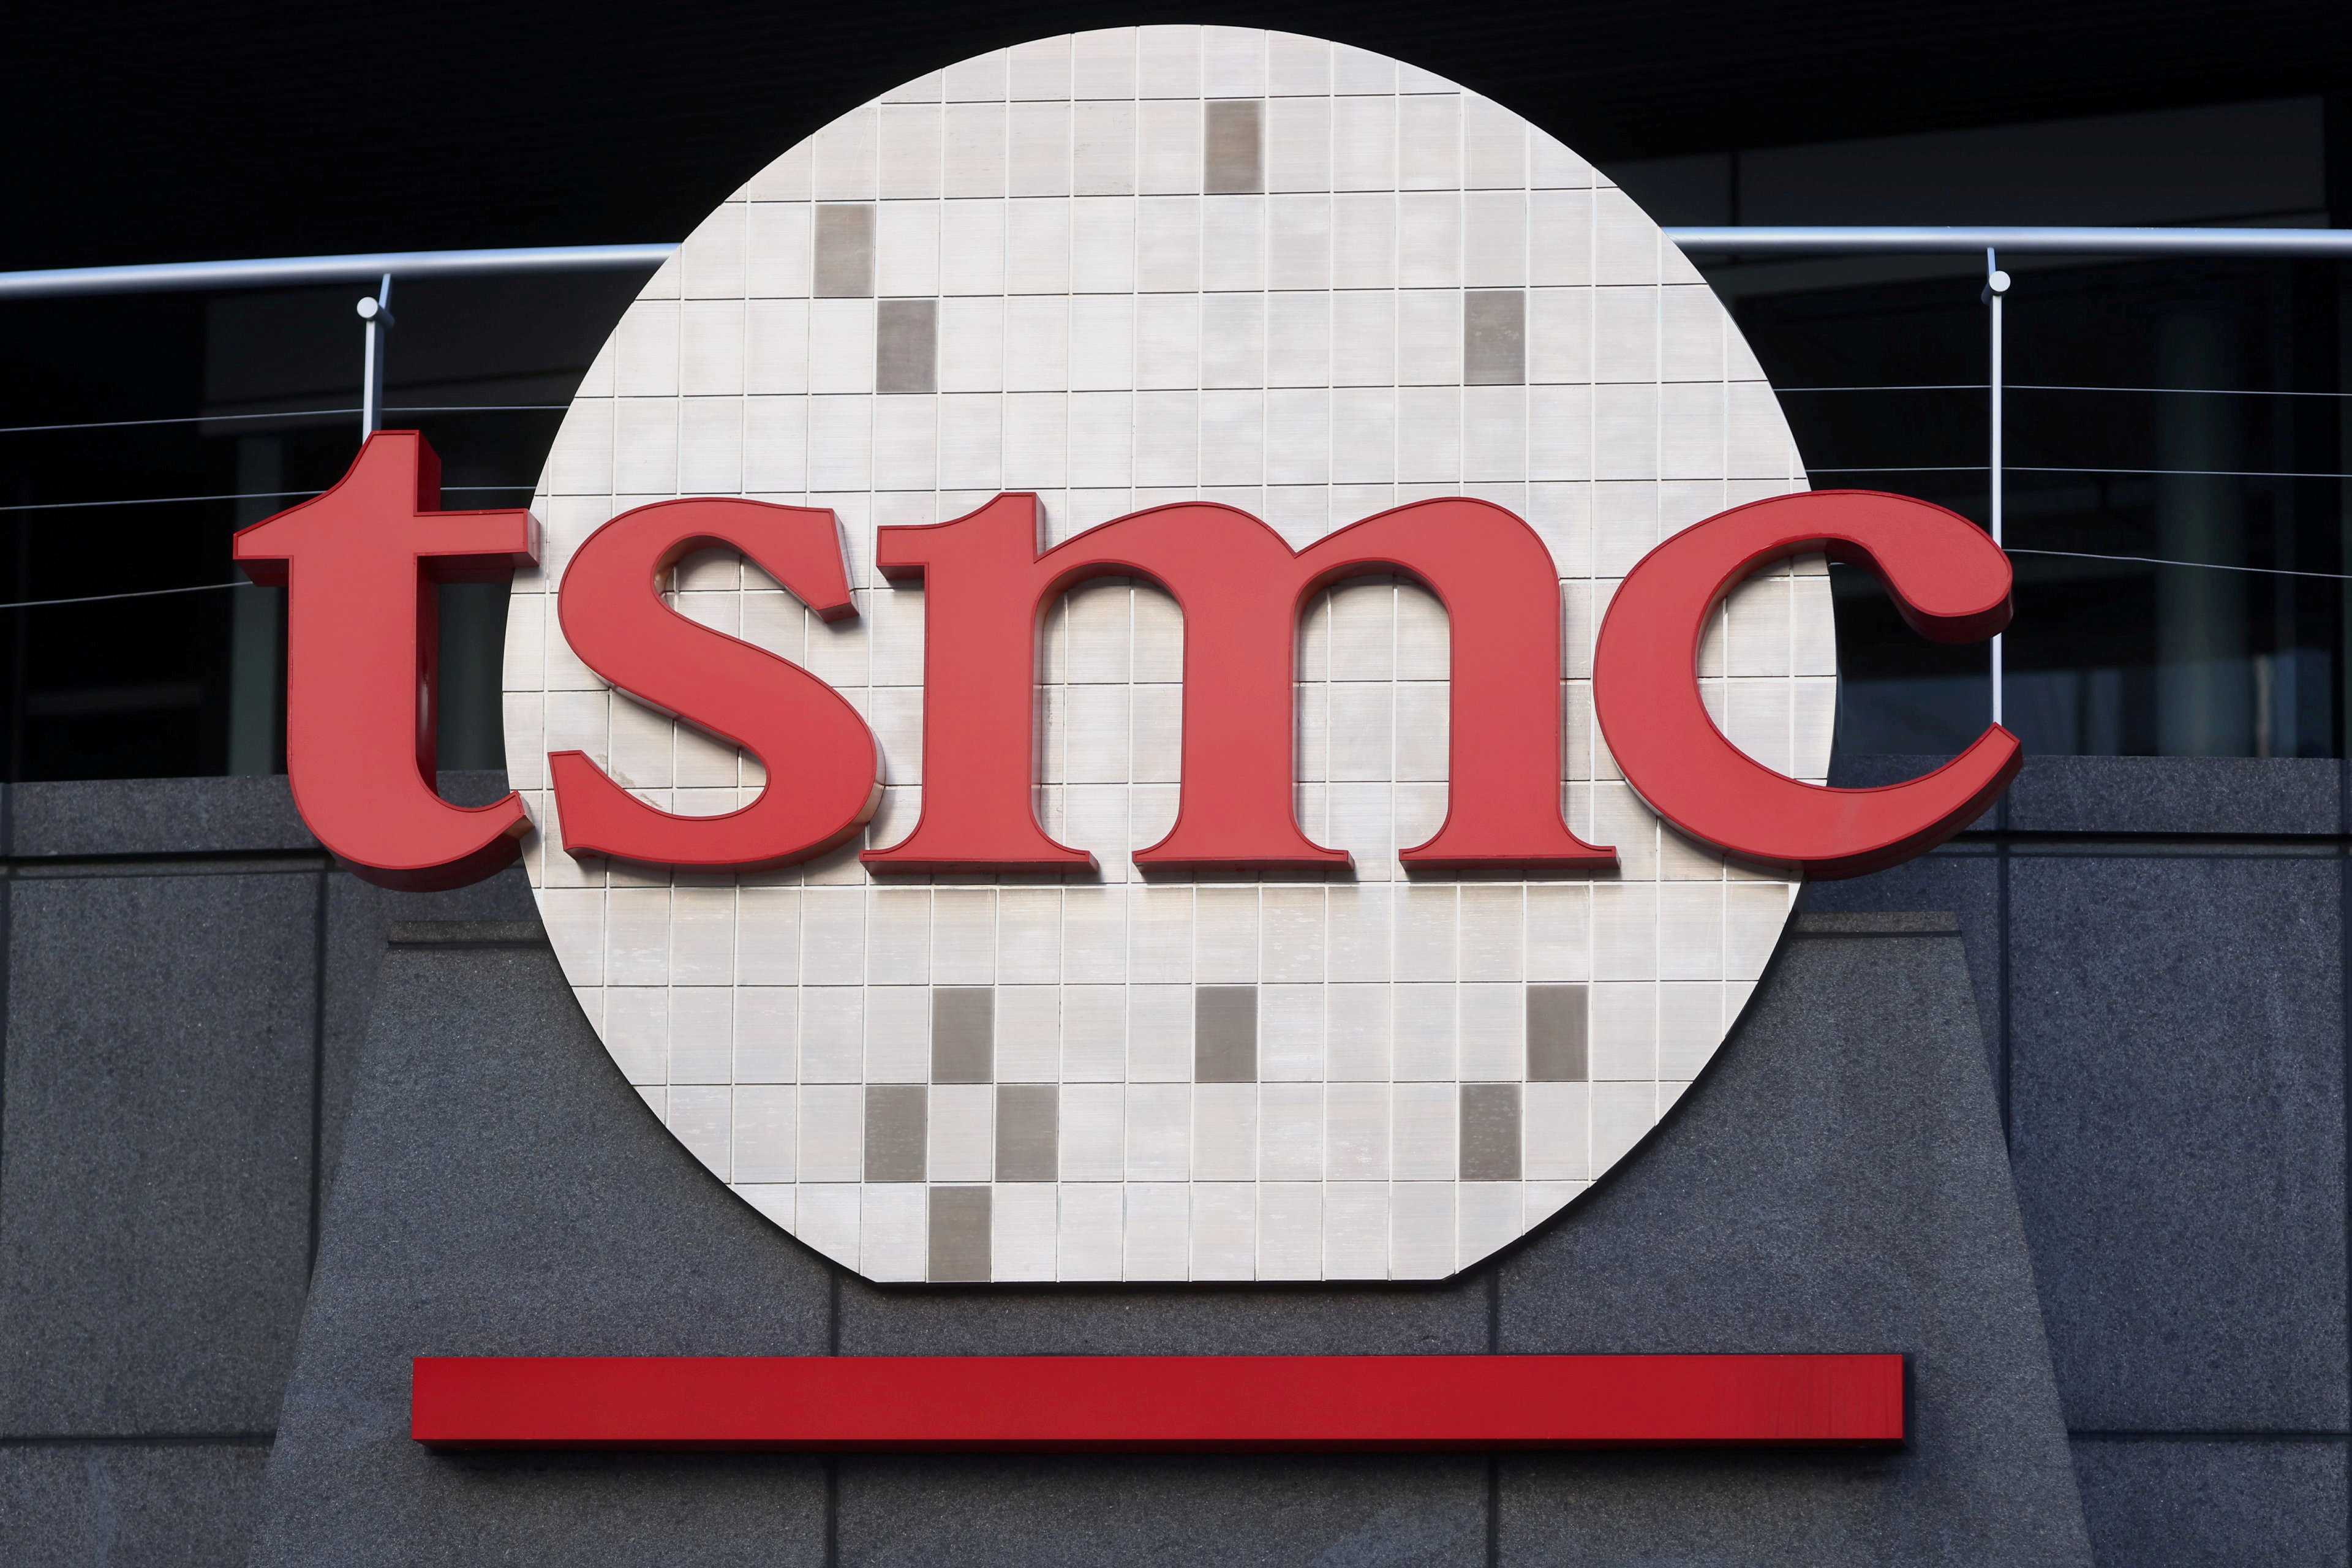 The logo of Taiwan Semiconductor Manufacturing Co (TSMC) is pictured at its headquarters, in Hsinchu, Taiwan, January 19, 2021. REUTERS/Ann Wang/File Photo